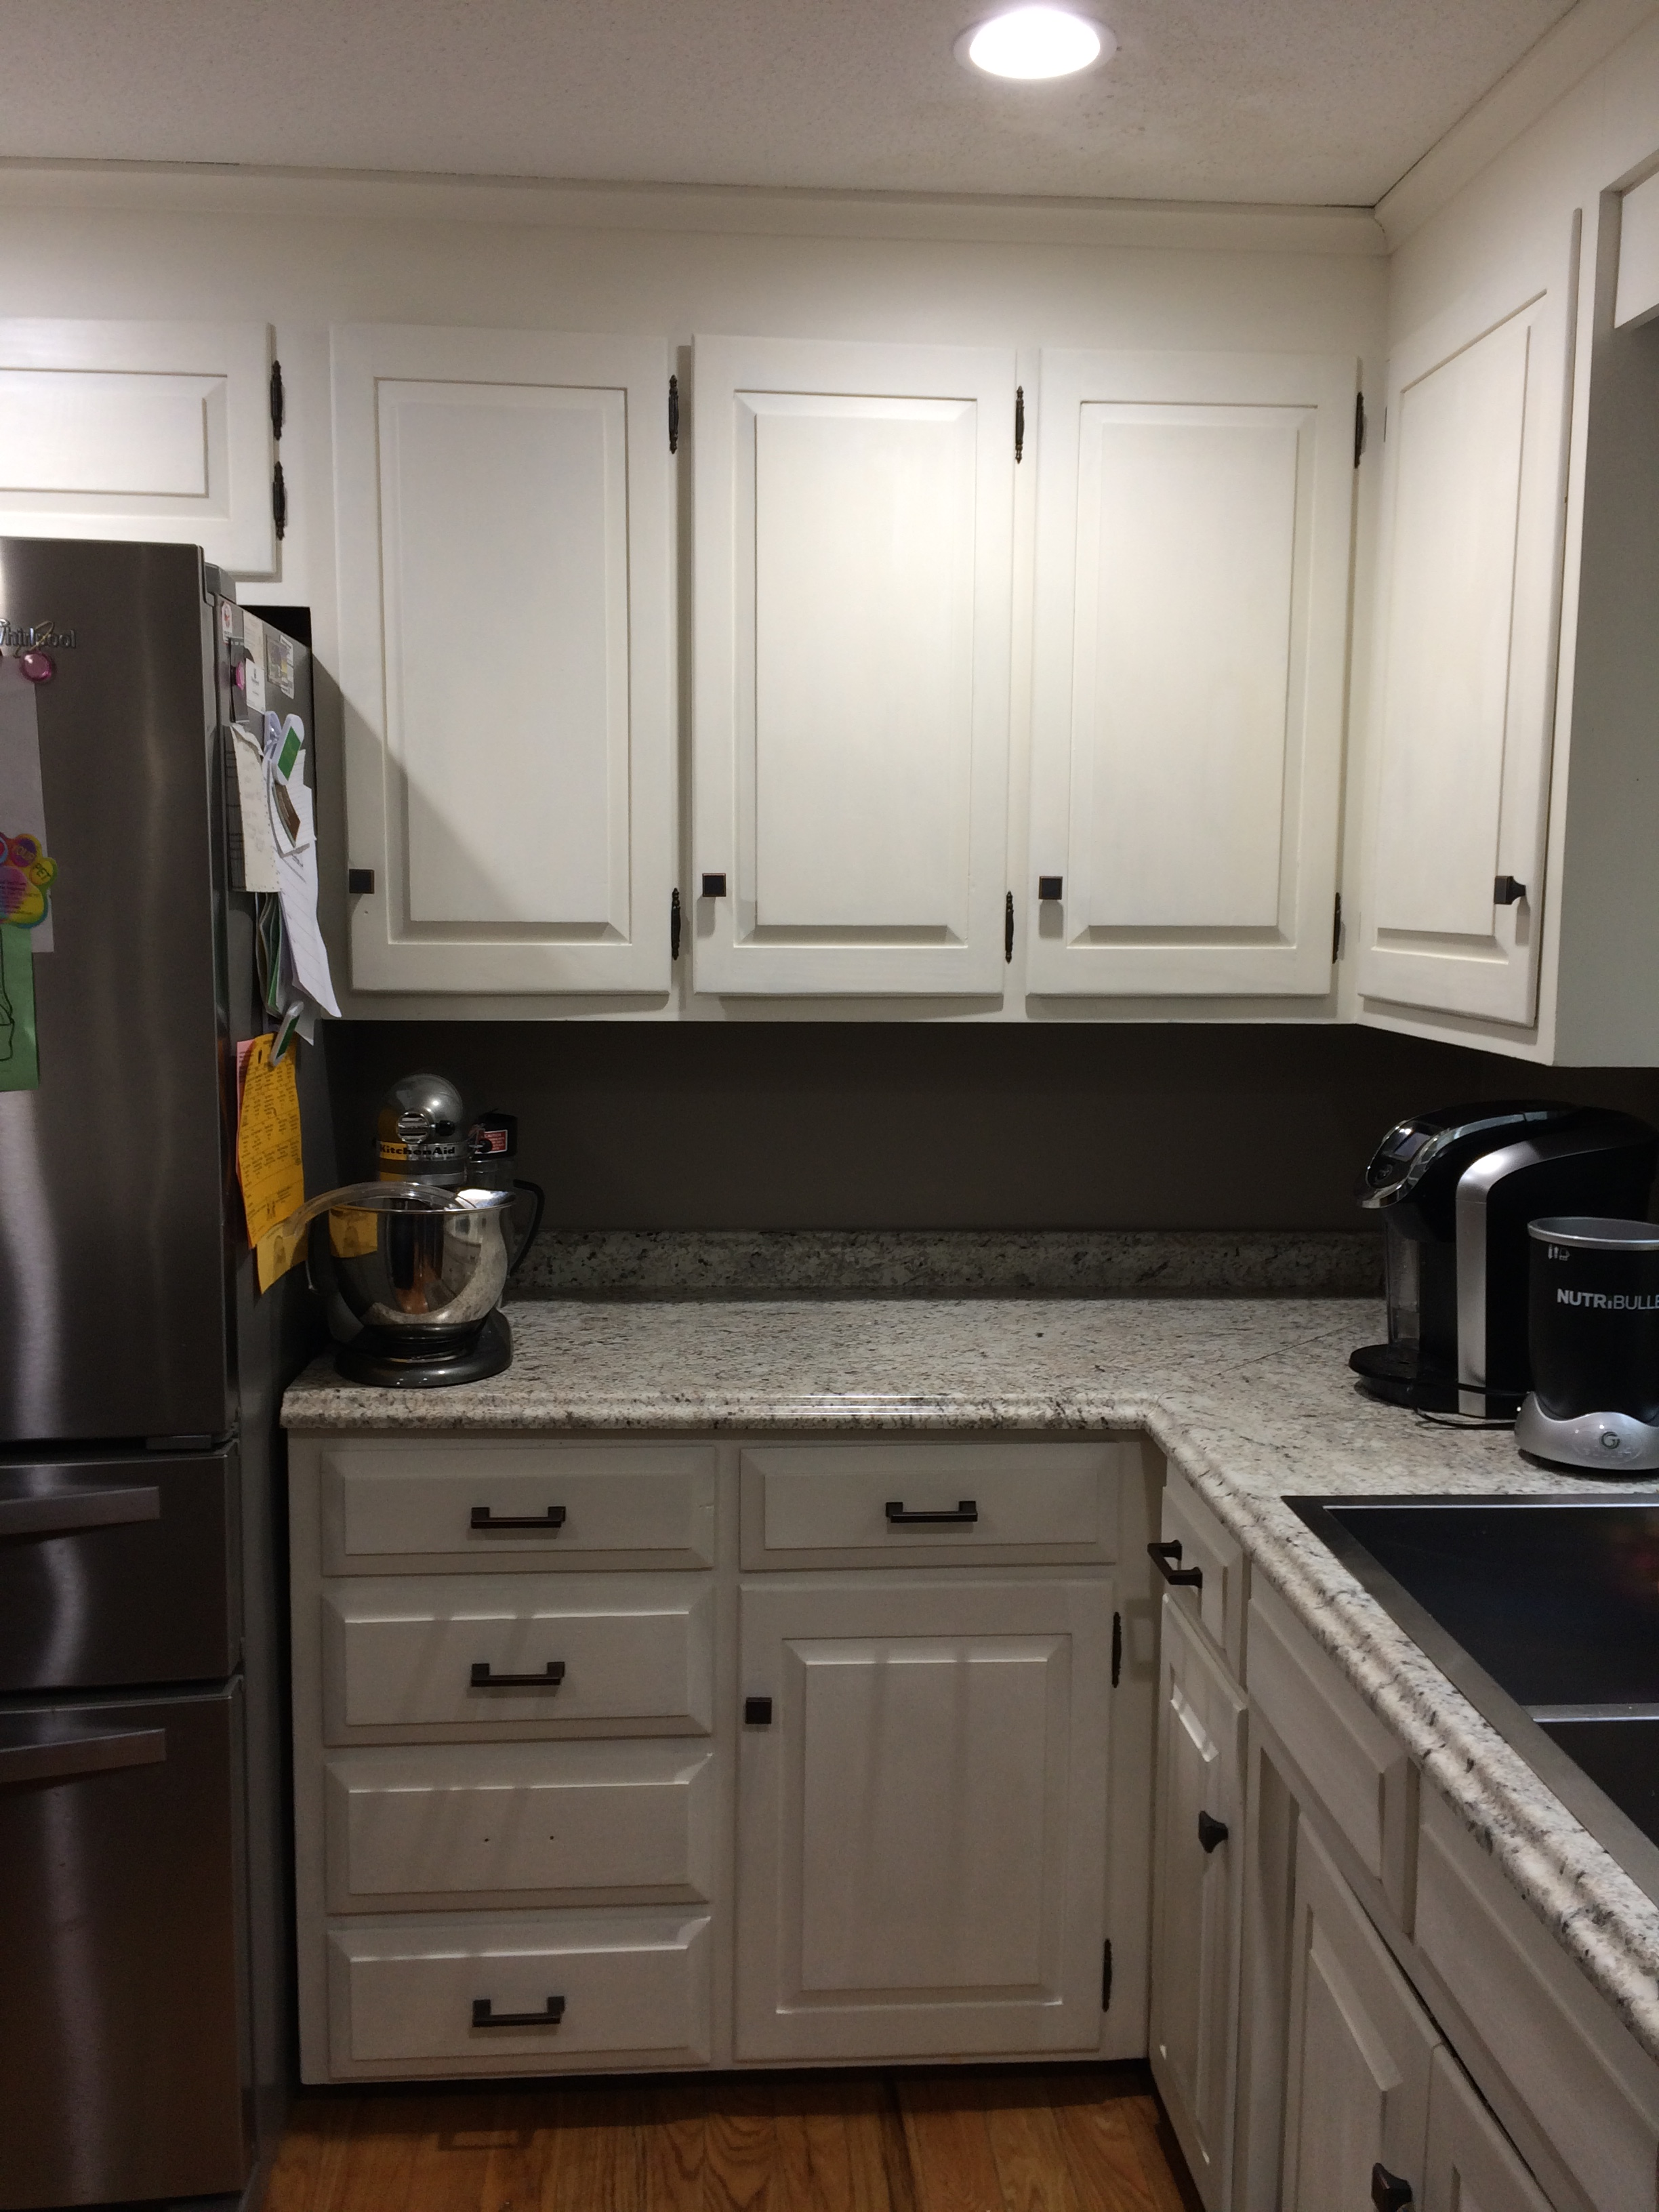 Kitchen & Bathroom Restoration | Western MA | Painted Patina